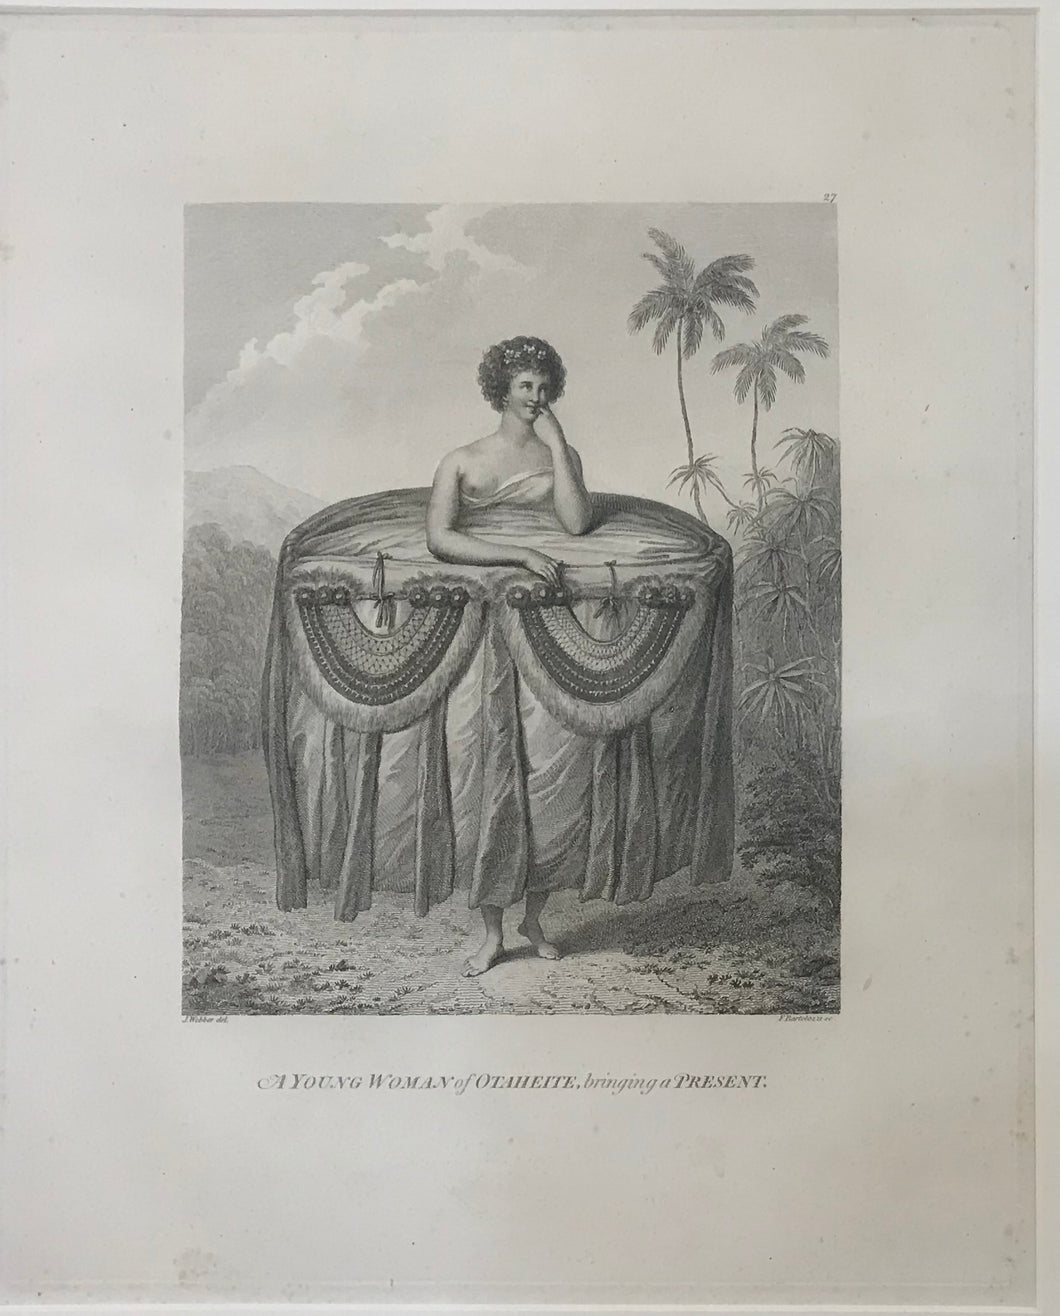 'A Young Woman Of Otaheite, Bringing A Present